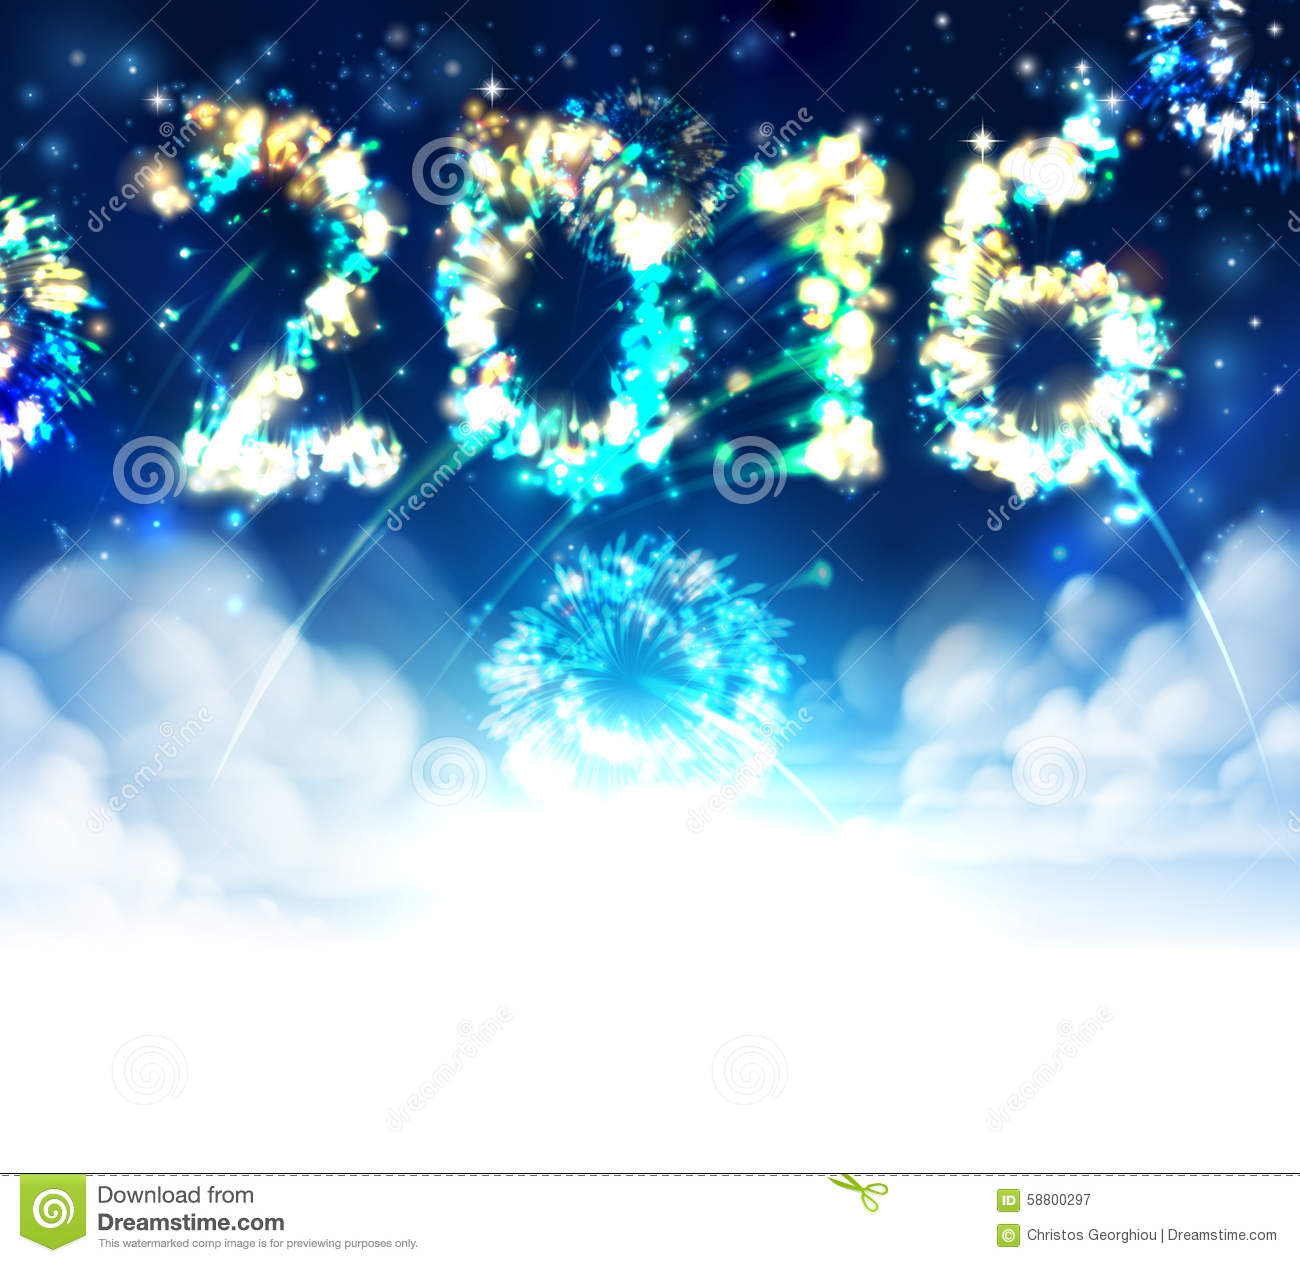 sky fireworks 2016 new year background with clouds and stars fades to white at the bottom for easy use as border design or header